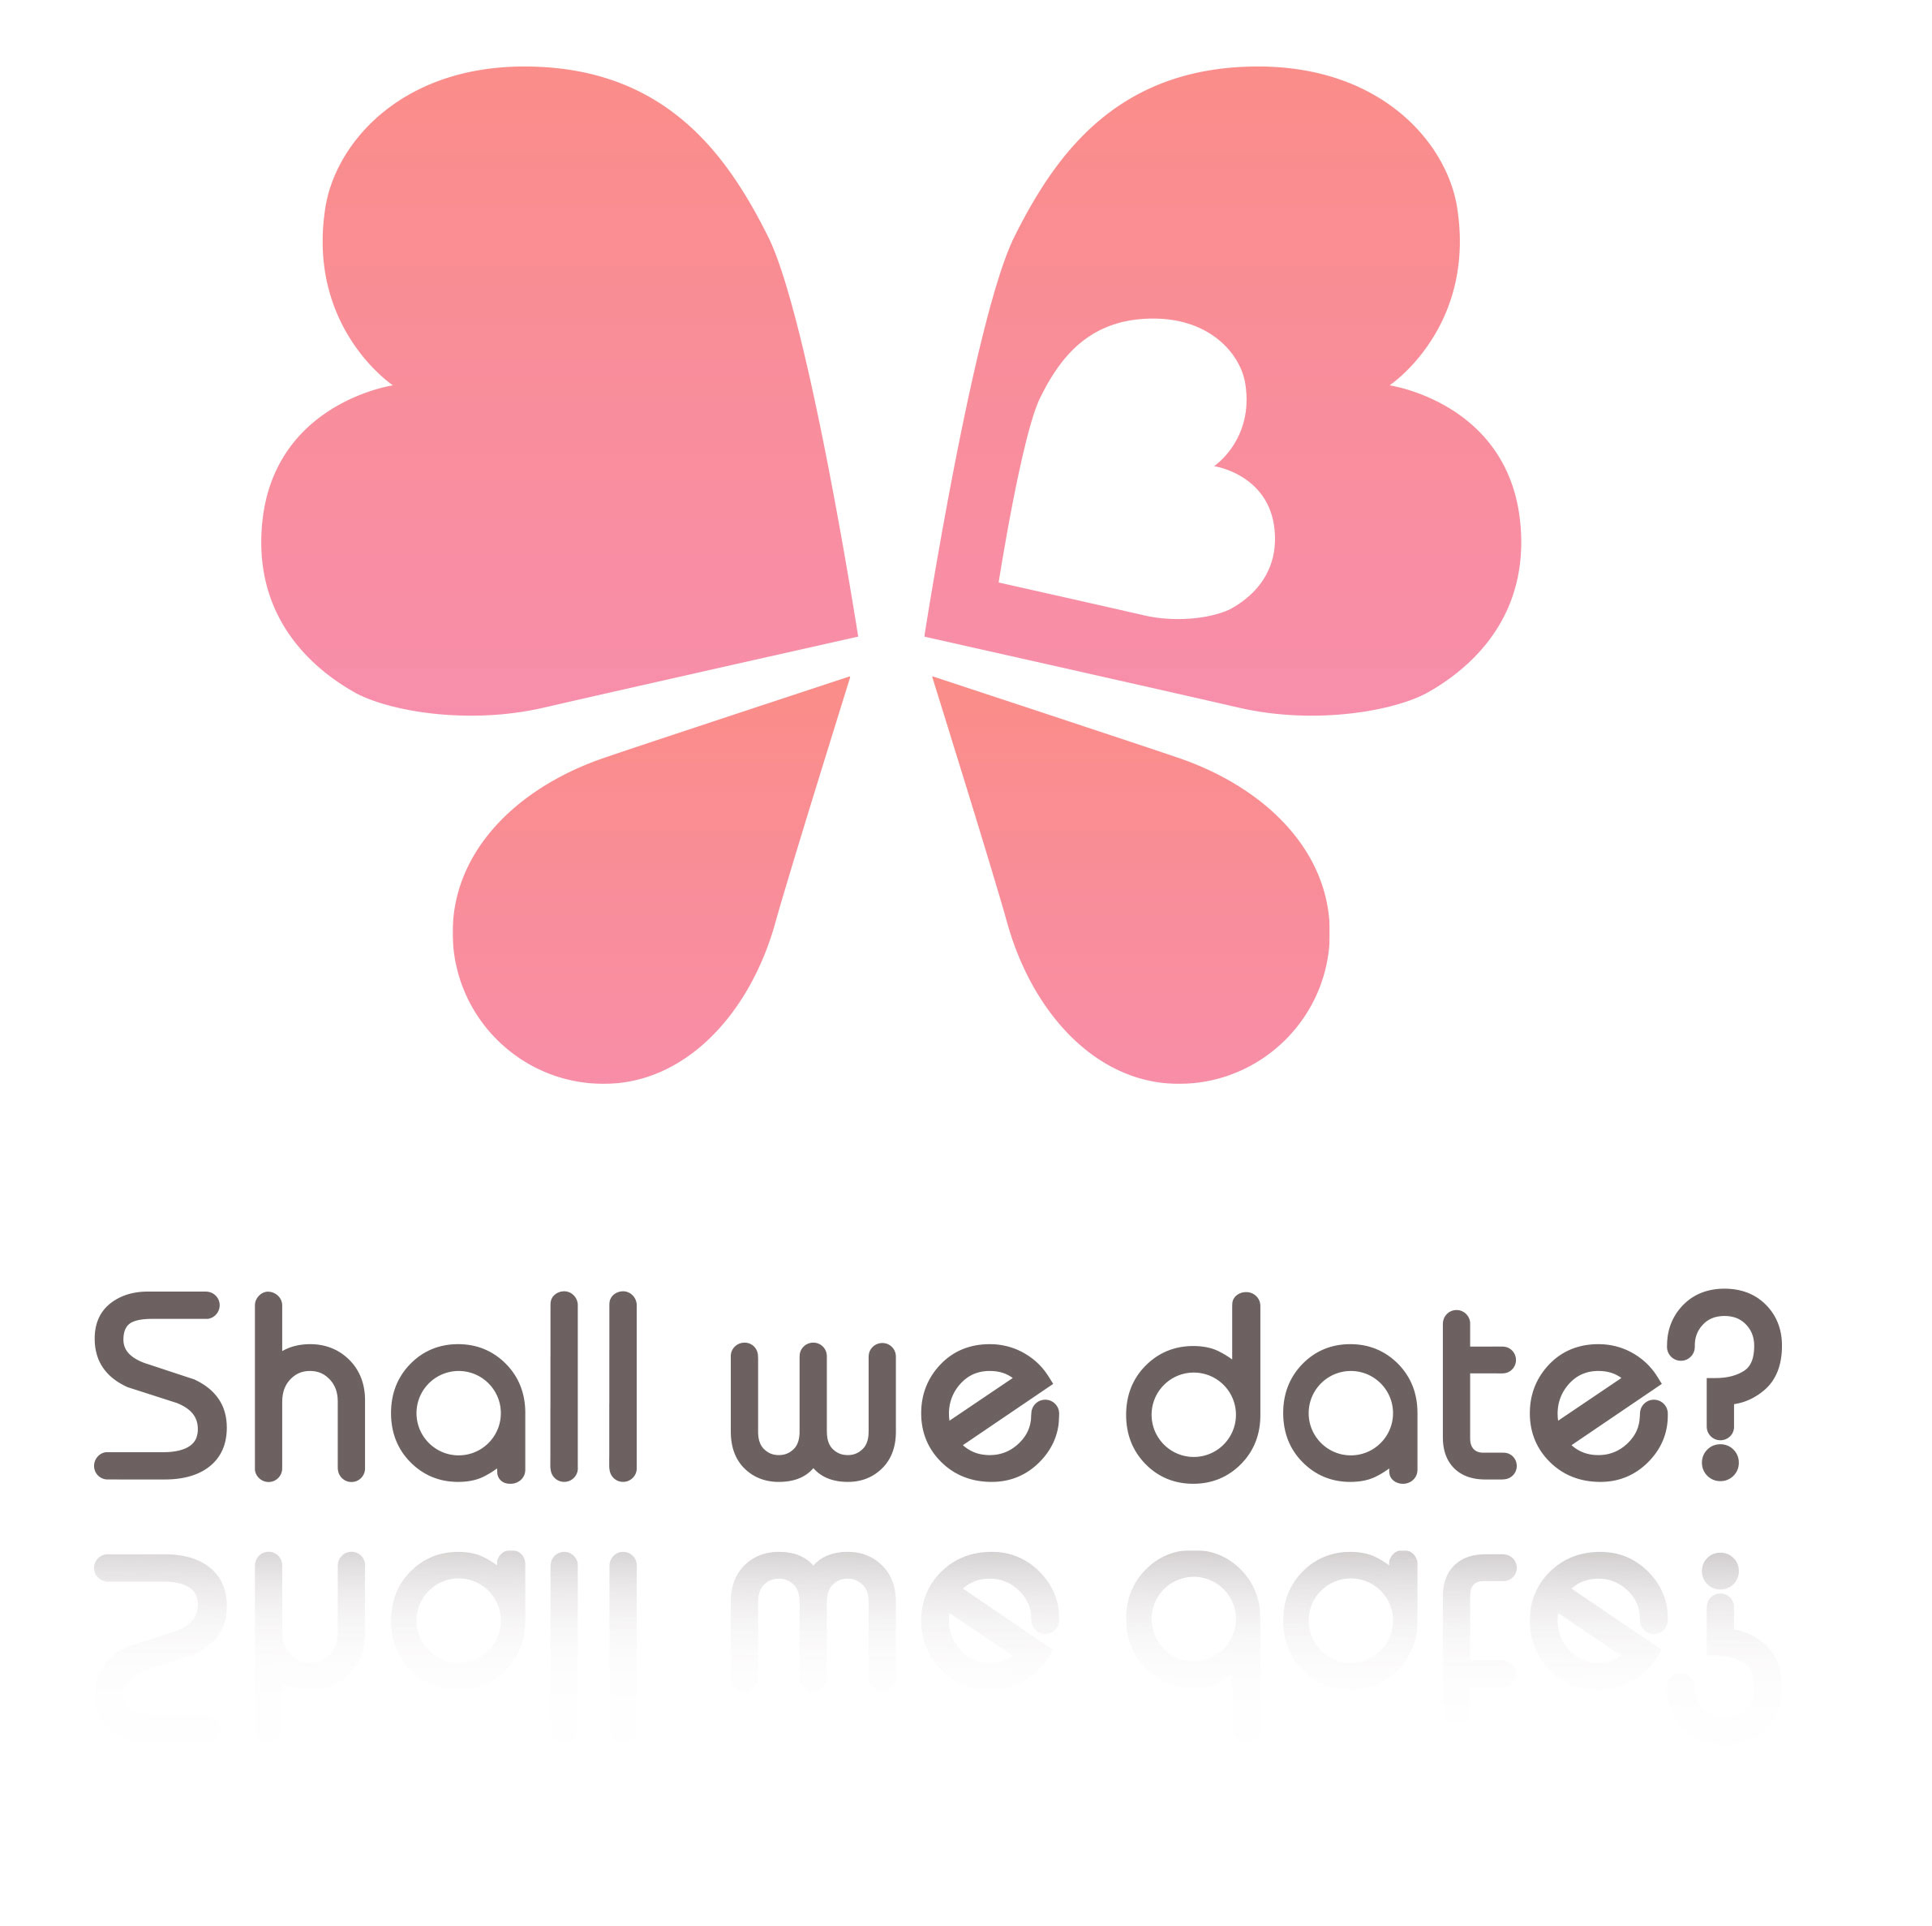 Shall we dating site